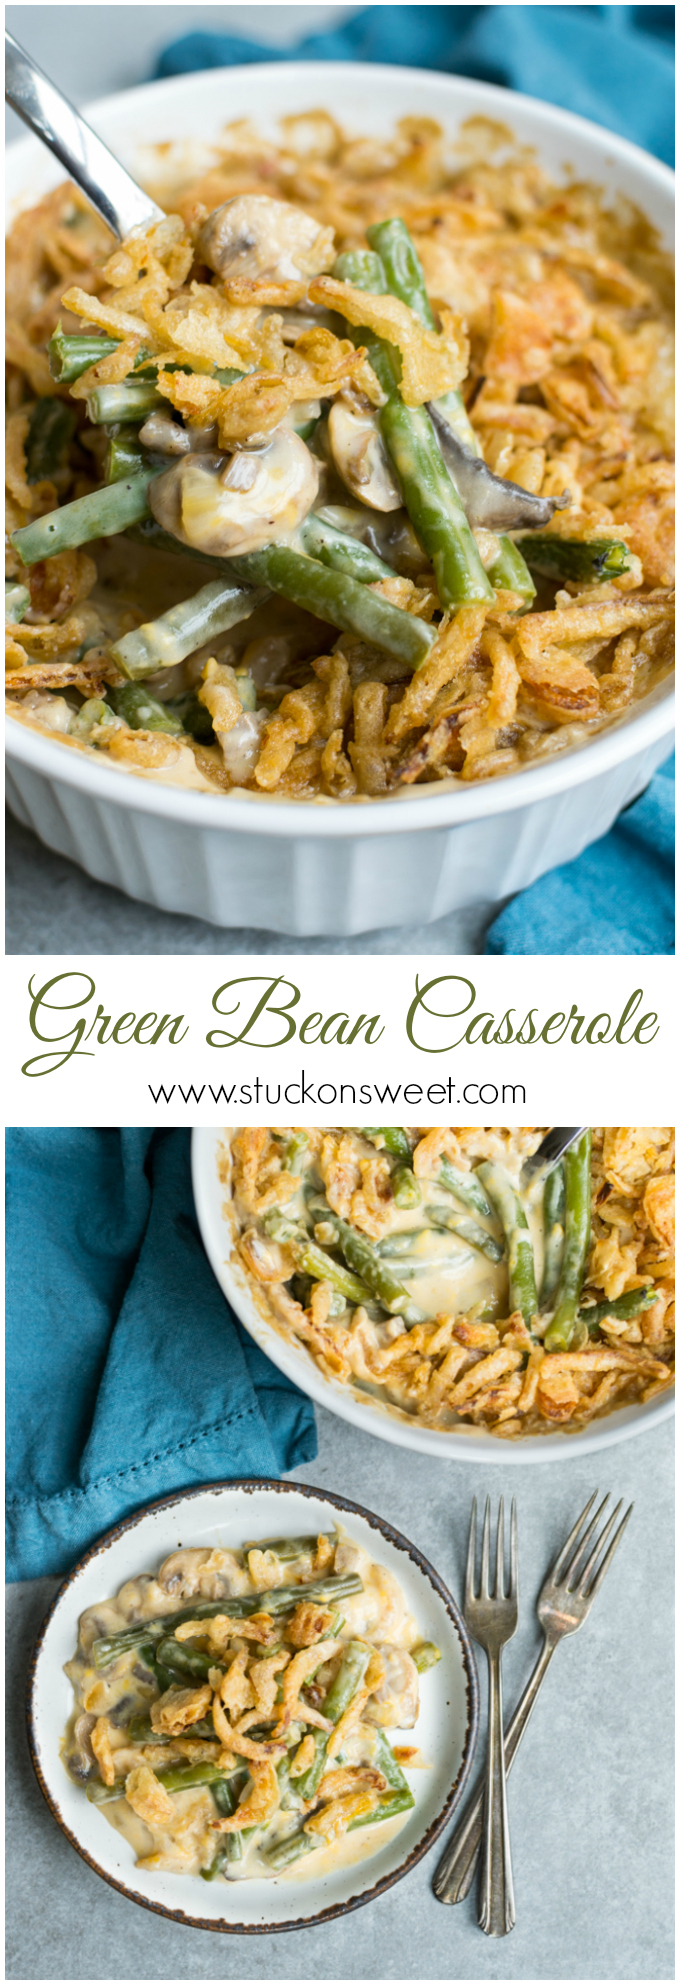 Green Bean Casserole The Perfect Thanksgiving Side Dish